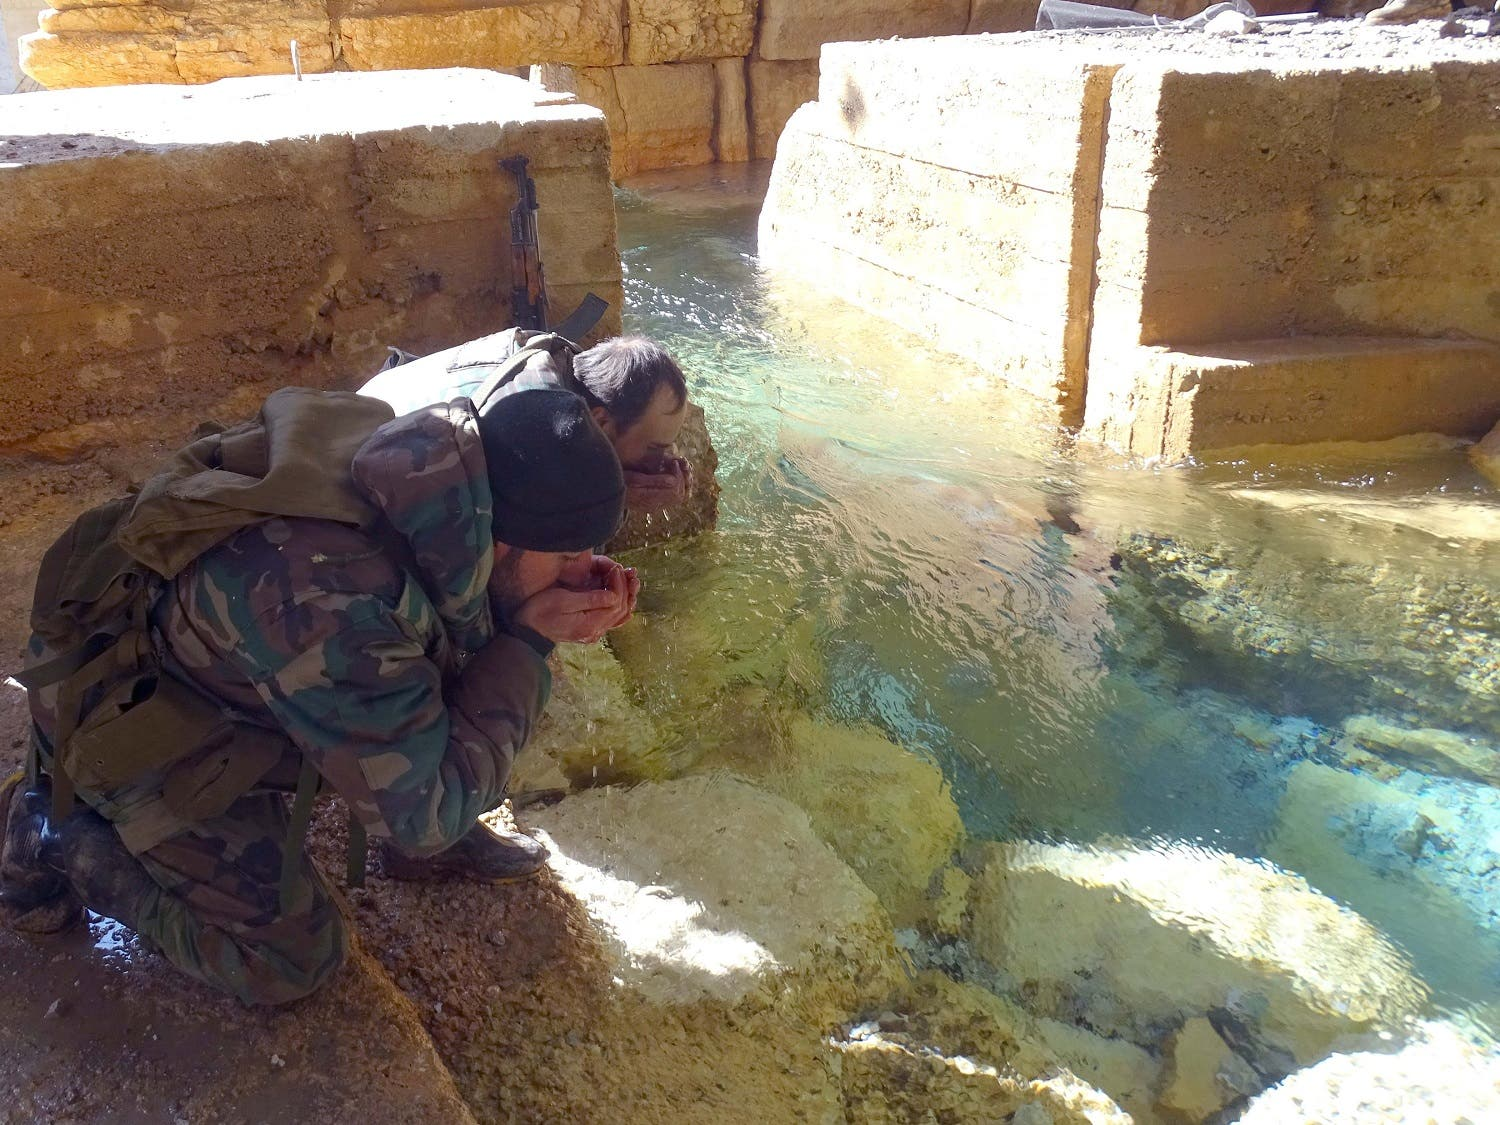 Syrian government soldiers drink from a water pumping station in the village of Ain al-Fija in the Wadi Barada valley near Damascus. (Reuters)